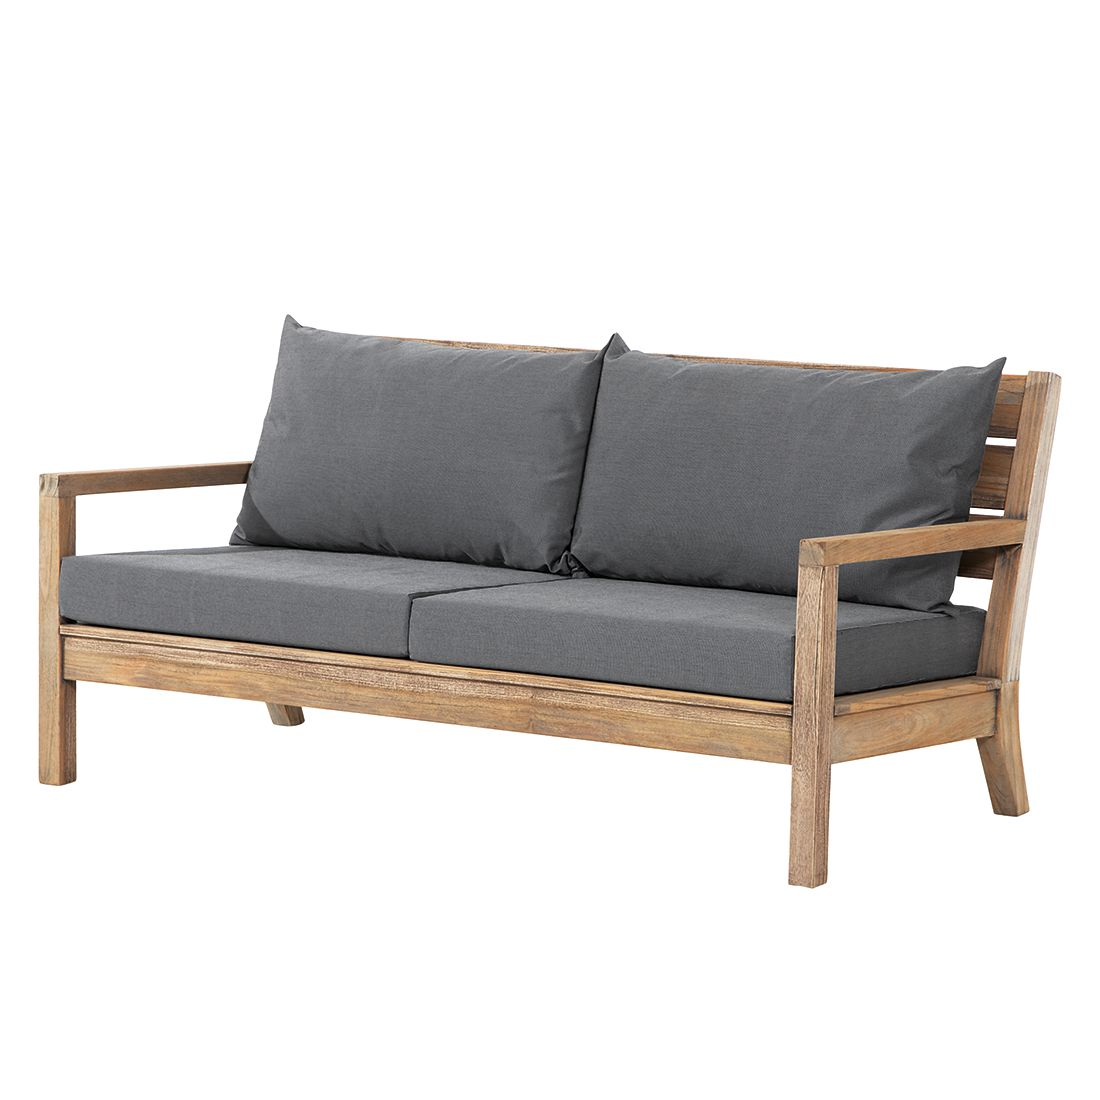 gartensofa moretti iv teakholz massiv grau best freizeitm bel g nstig kaufen. Black Bedroom Furniture Sets. Home Design Ideas